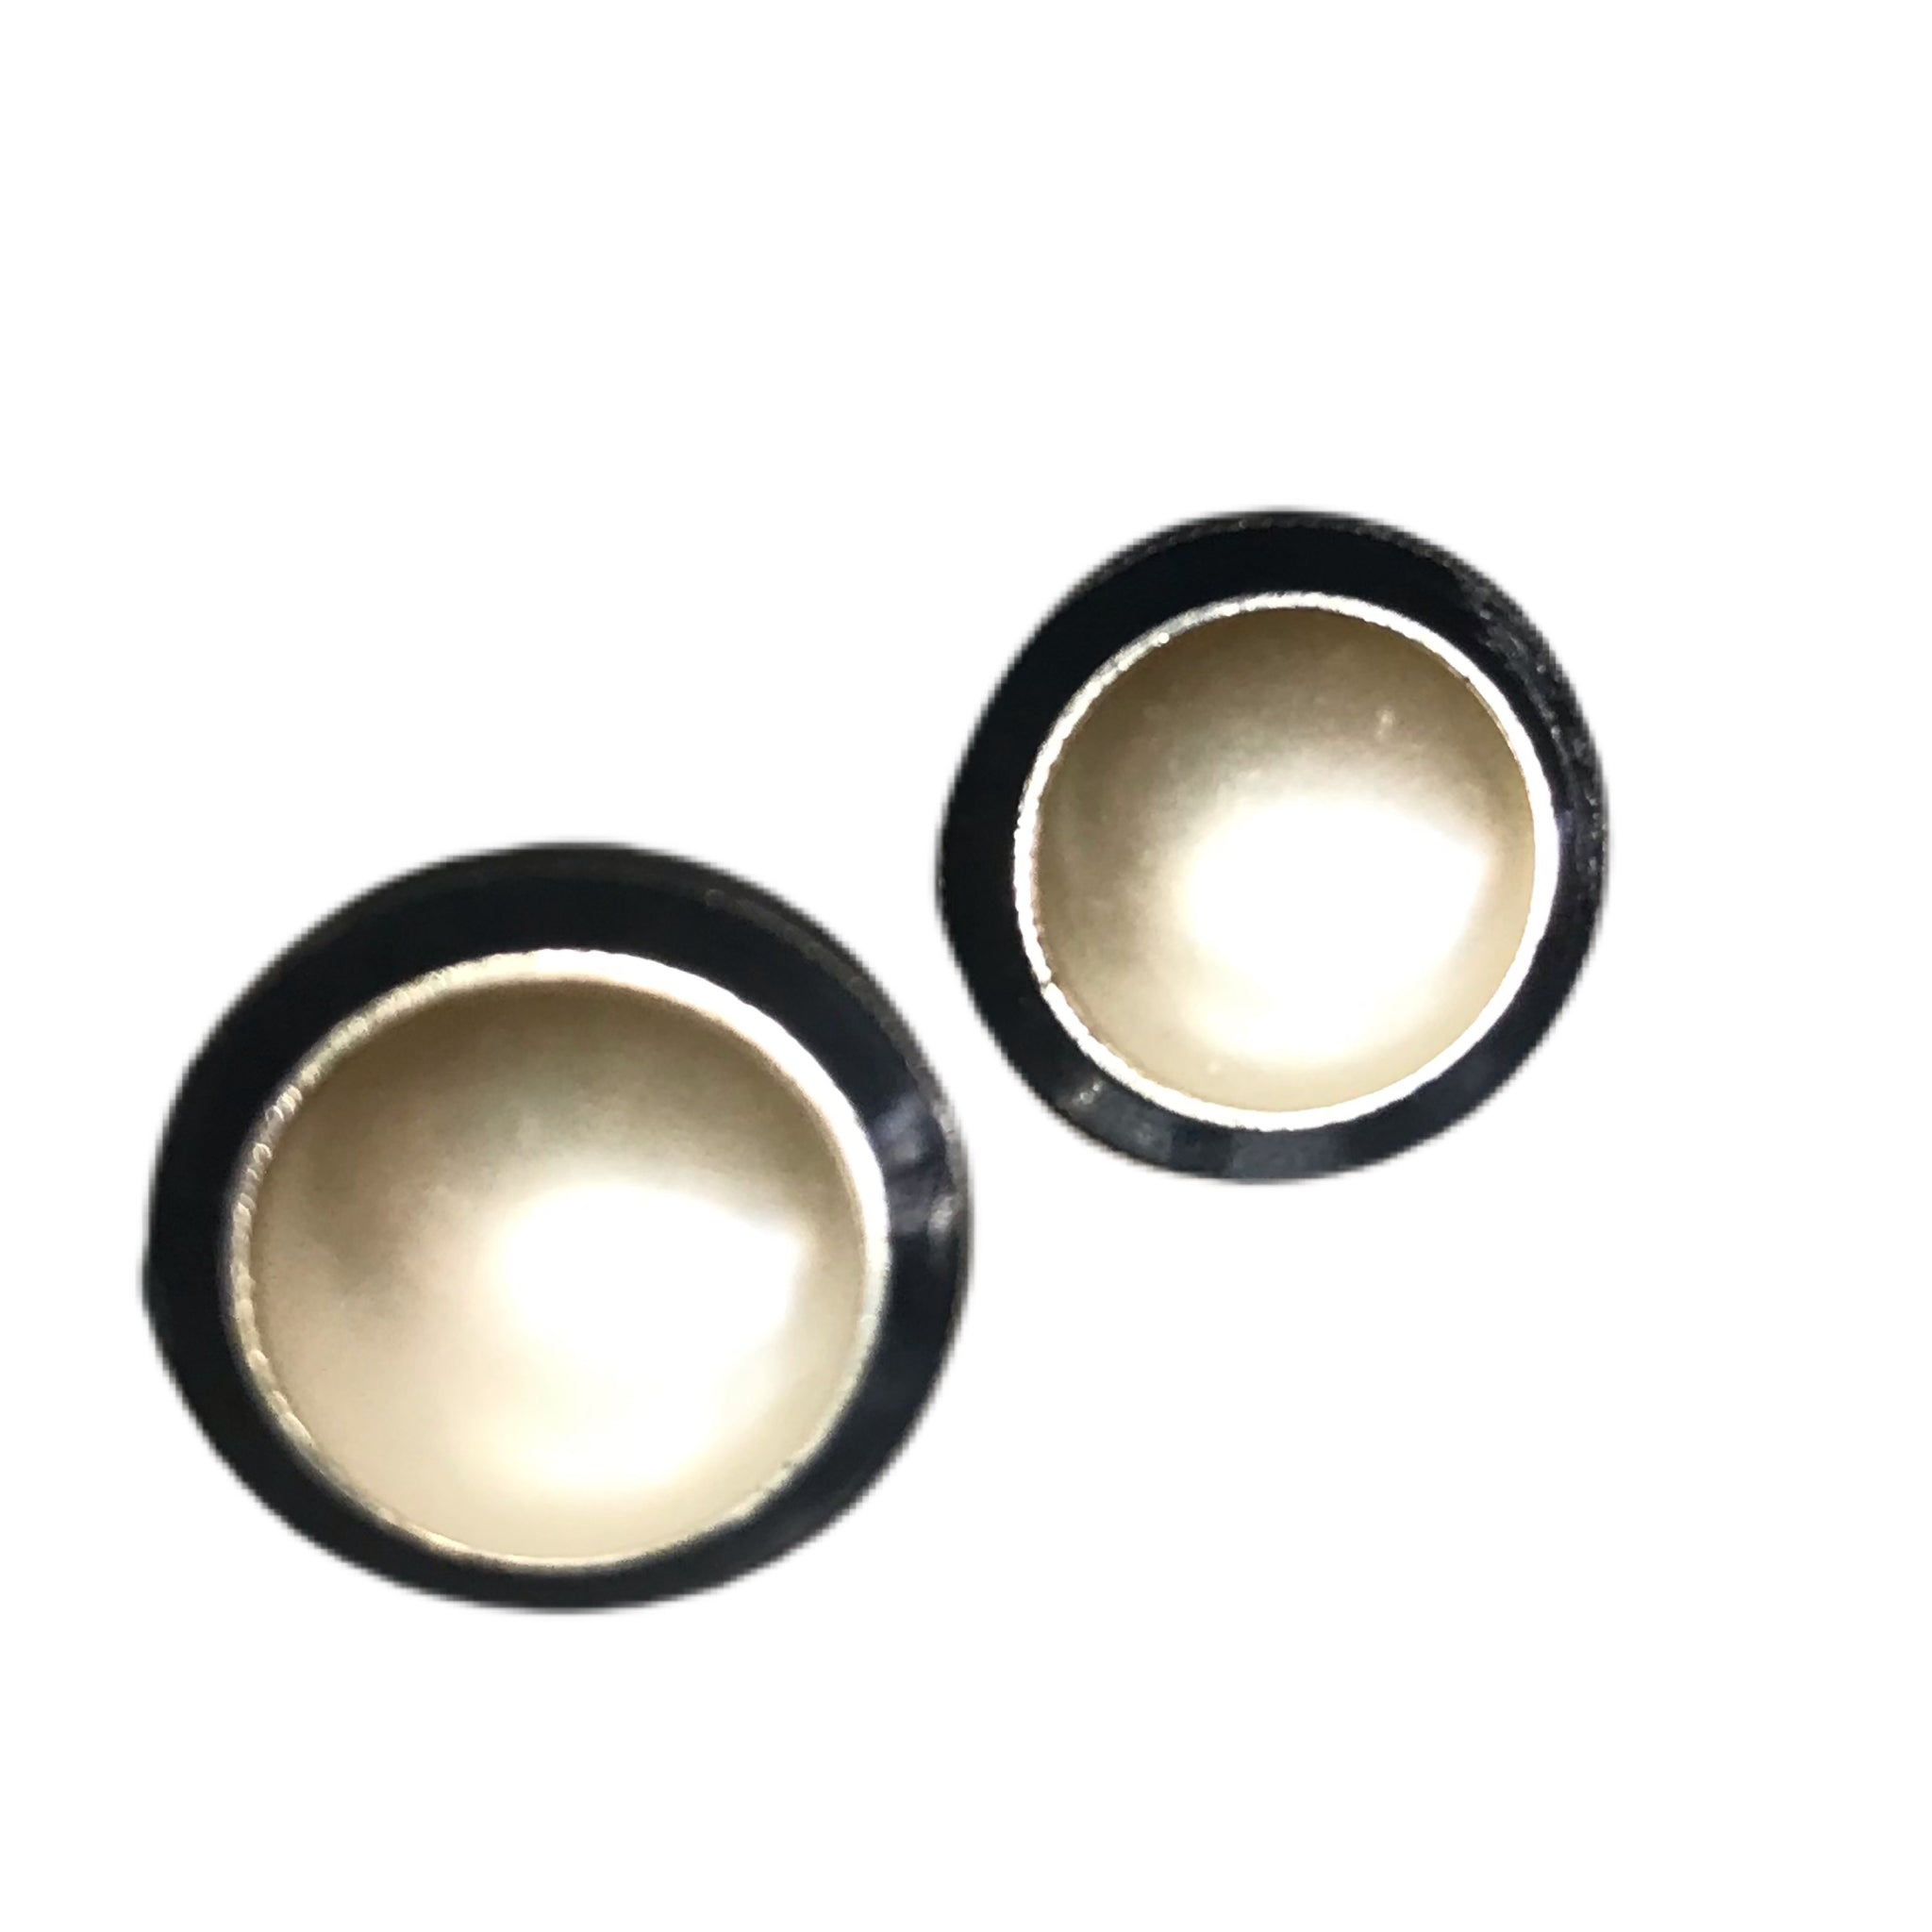 Domed Faux Pearl Clip Earrings with Black Enameled Edge circa 1960s